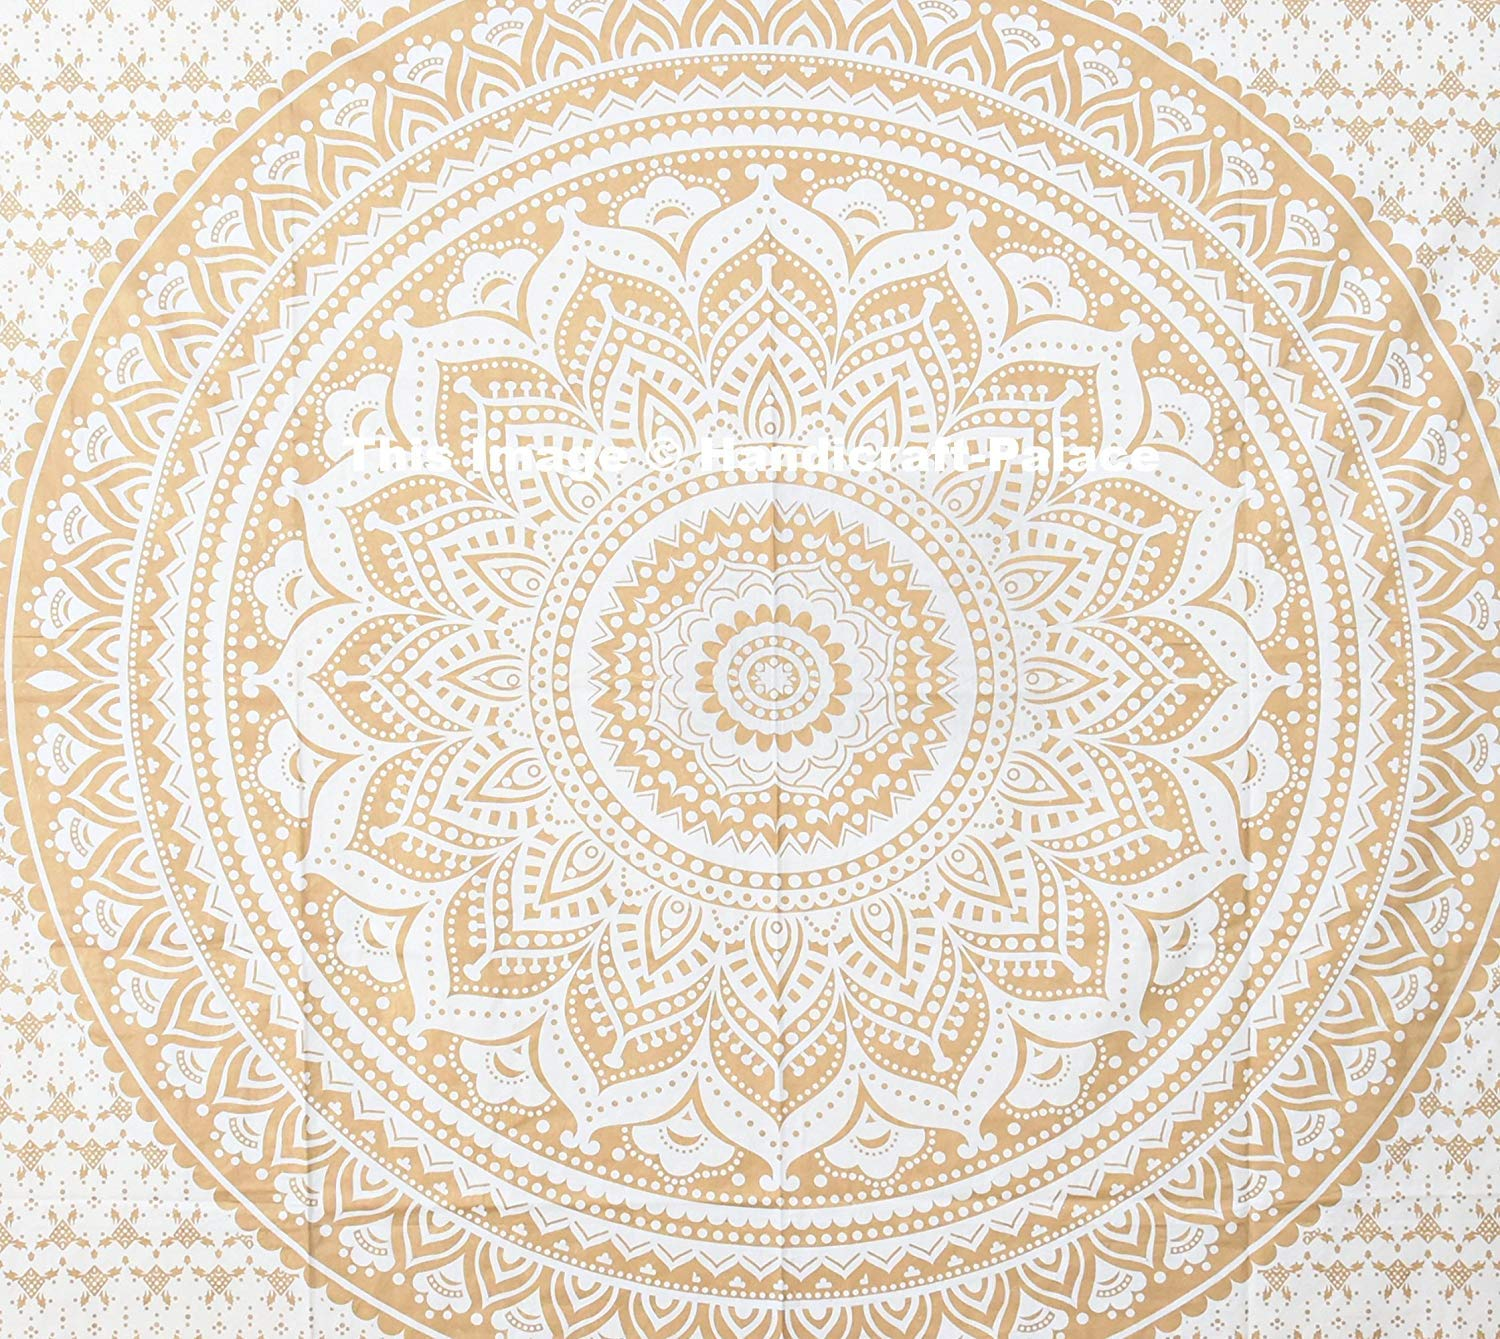 Gold Ombre Mandala Duvet Cover By ''Handicraft-Palace'' ,Boho Queen Duvet Cover, Bohemian Bedspread Ethnic Cotton Handmade With Pillow Case by Handicraft-Palace (Image #2)